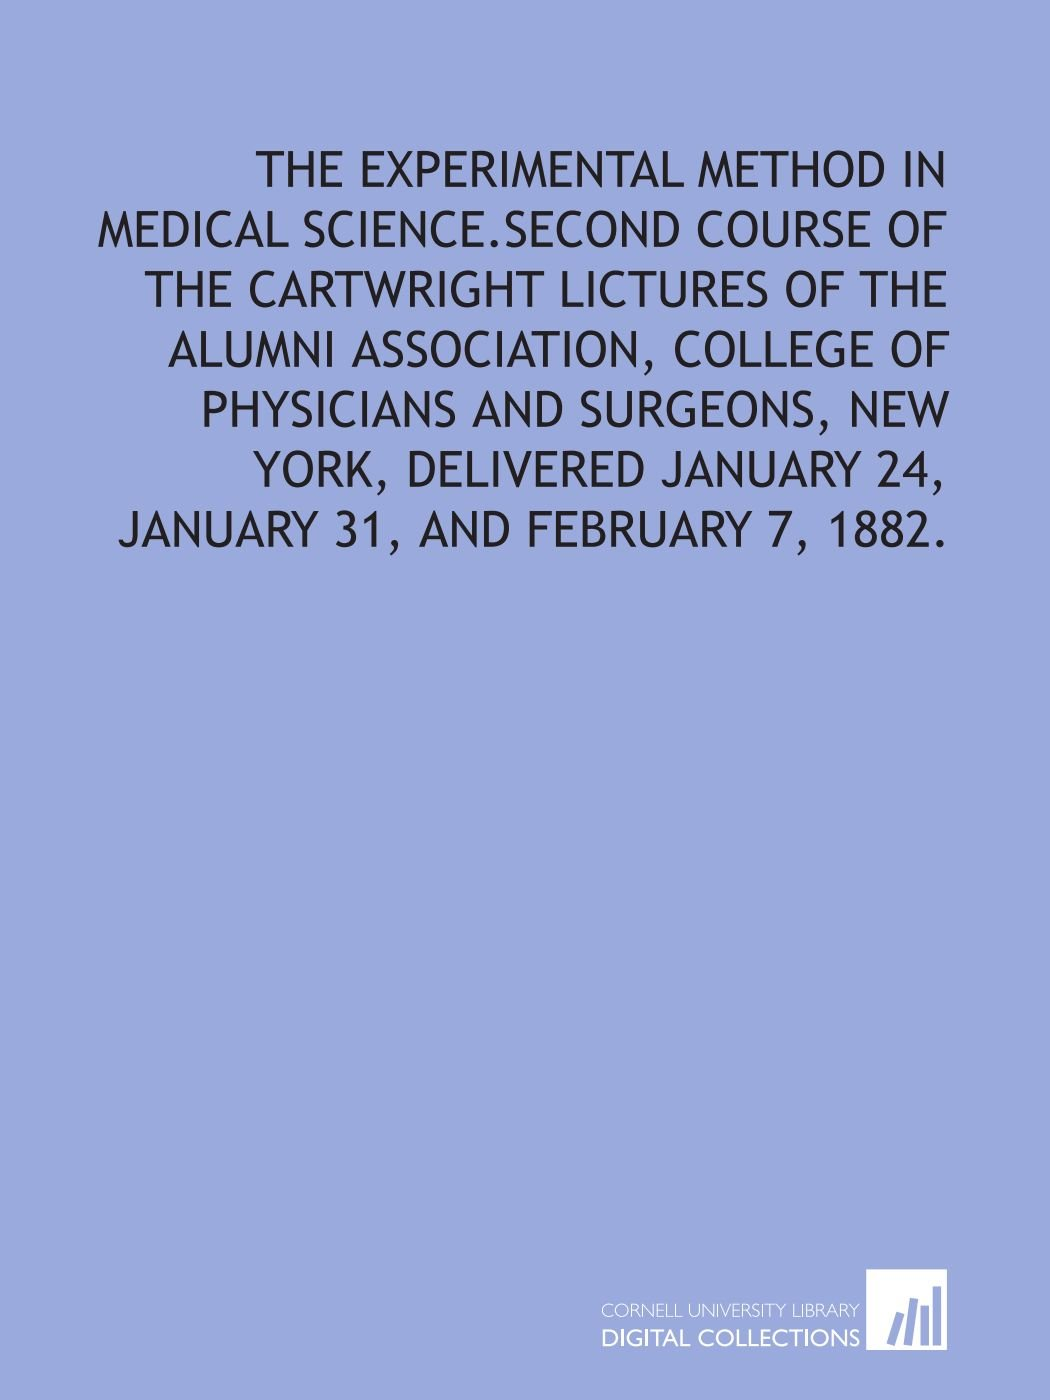 Download The experimental method in medical science.Second course of the Cartwright lictures of the Alumni association, College of physicians and surgeons, New ... January 24, January 31, and February 7, 1882. pdf